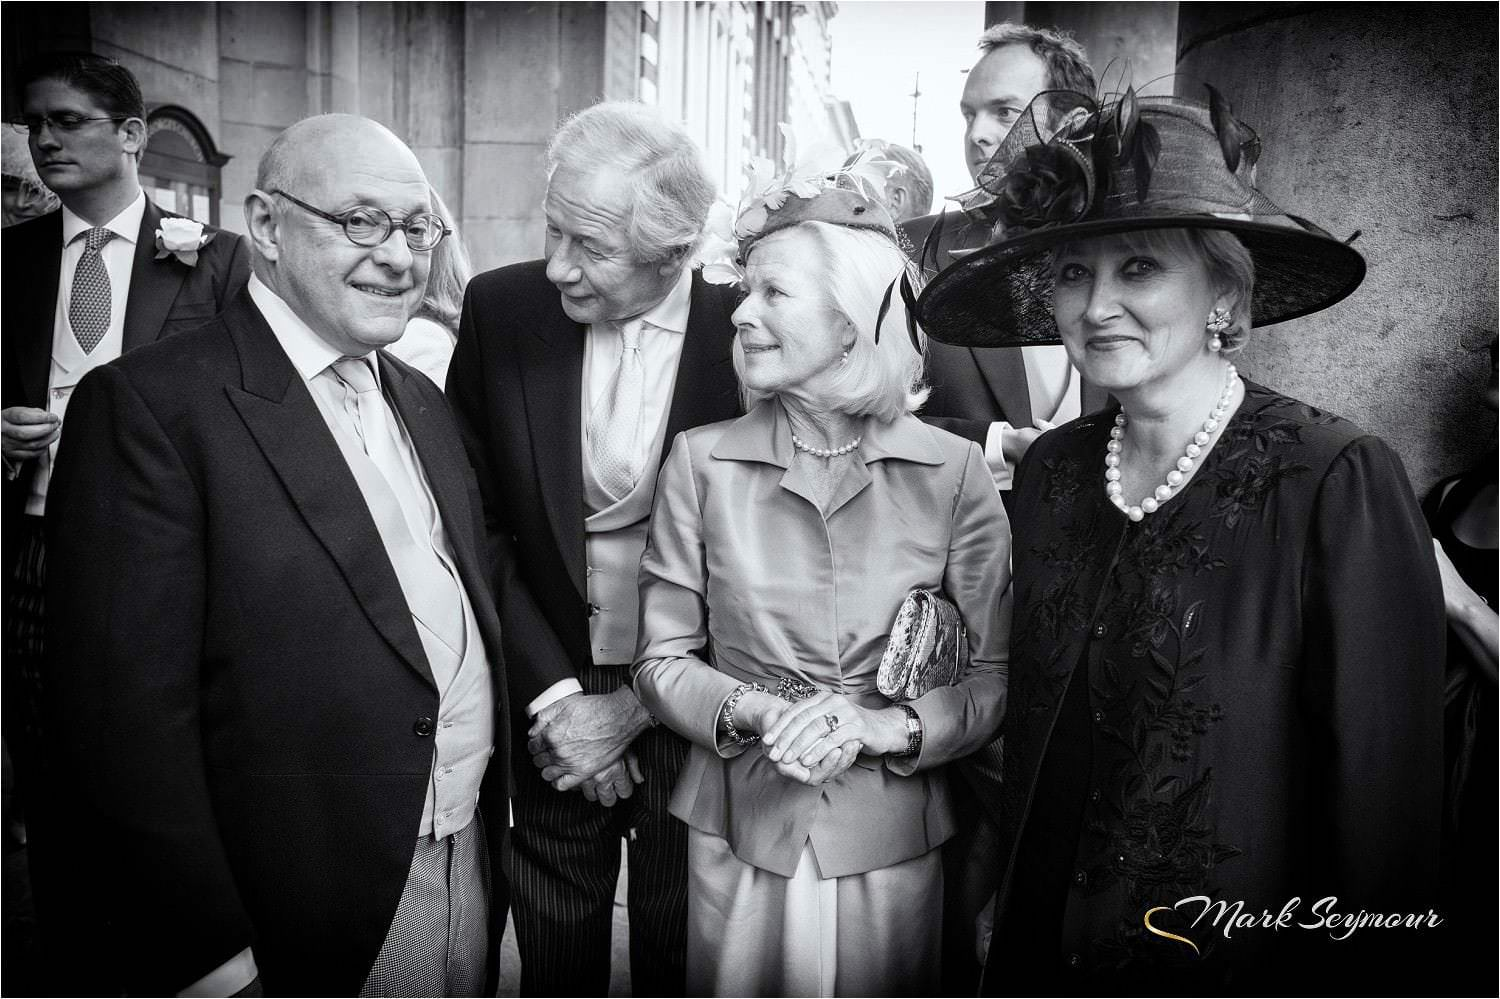 The London society wedding